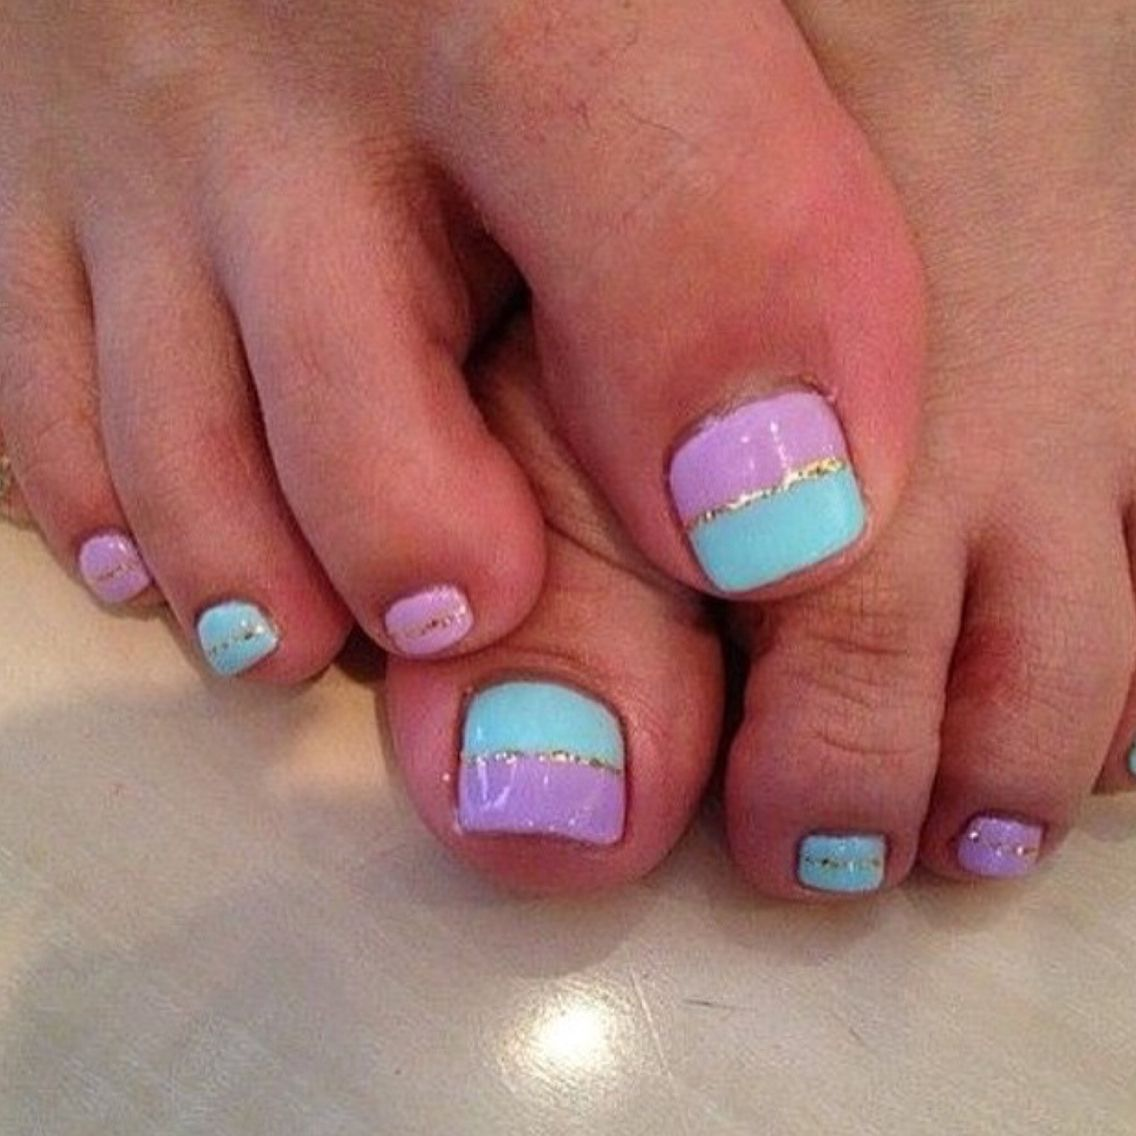 Will look cuter on my toes | Toe nail designs | Pinterest | Nagel ...